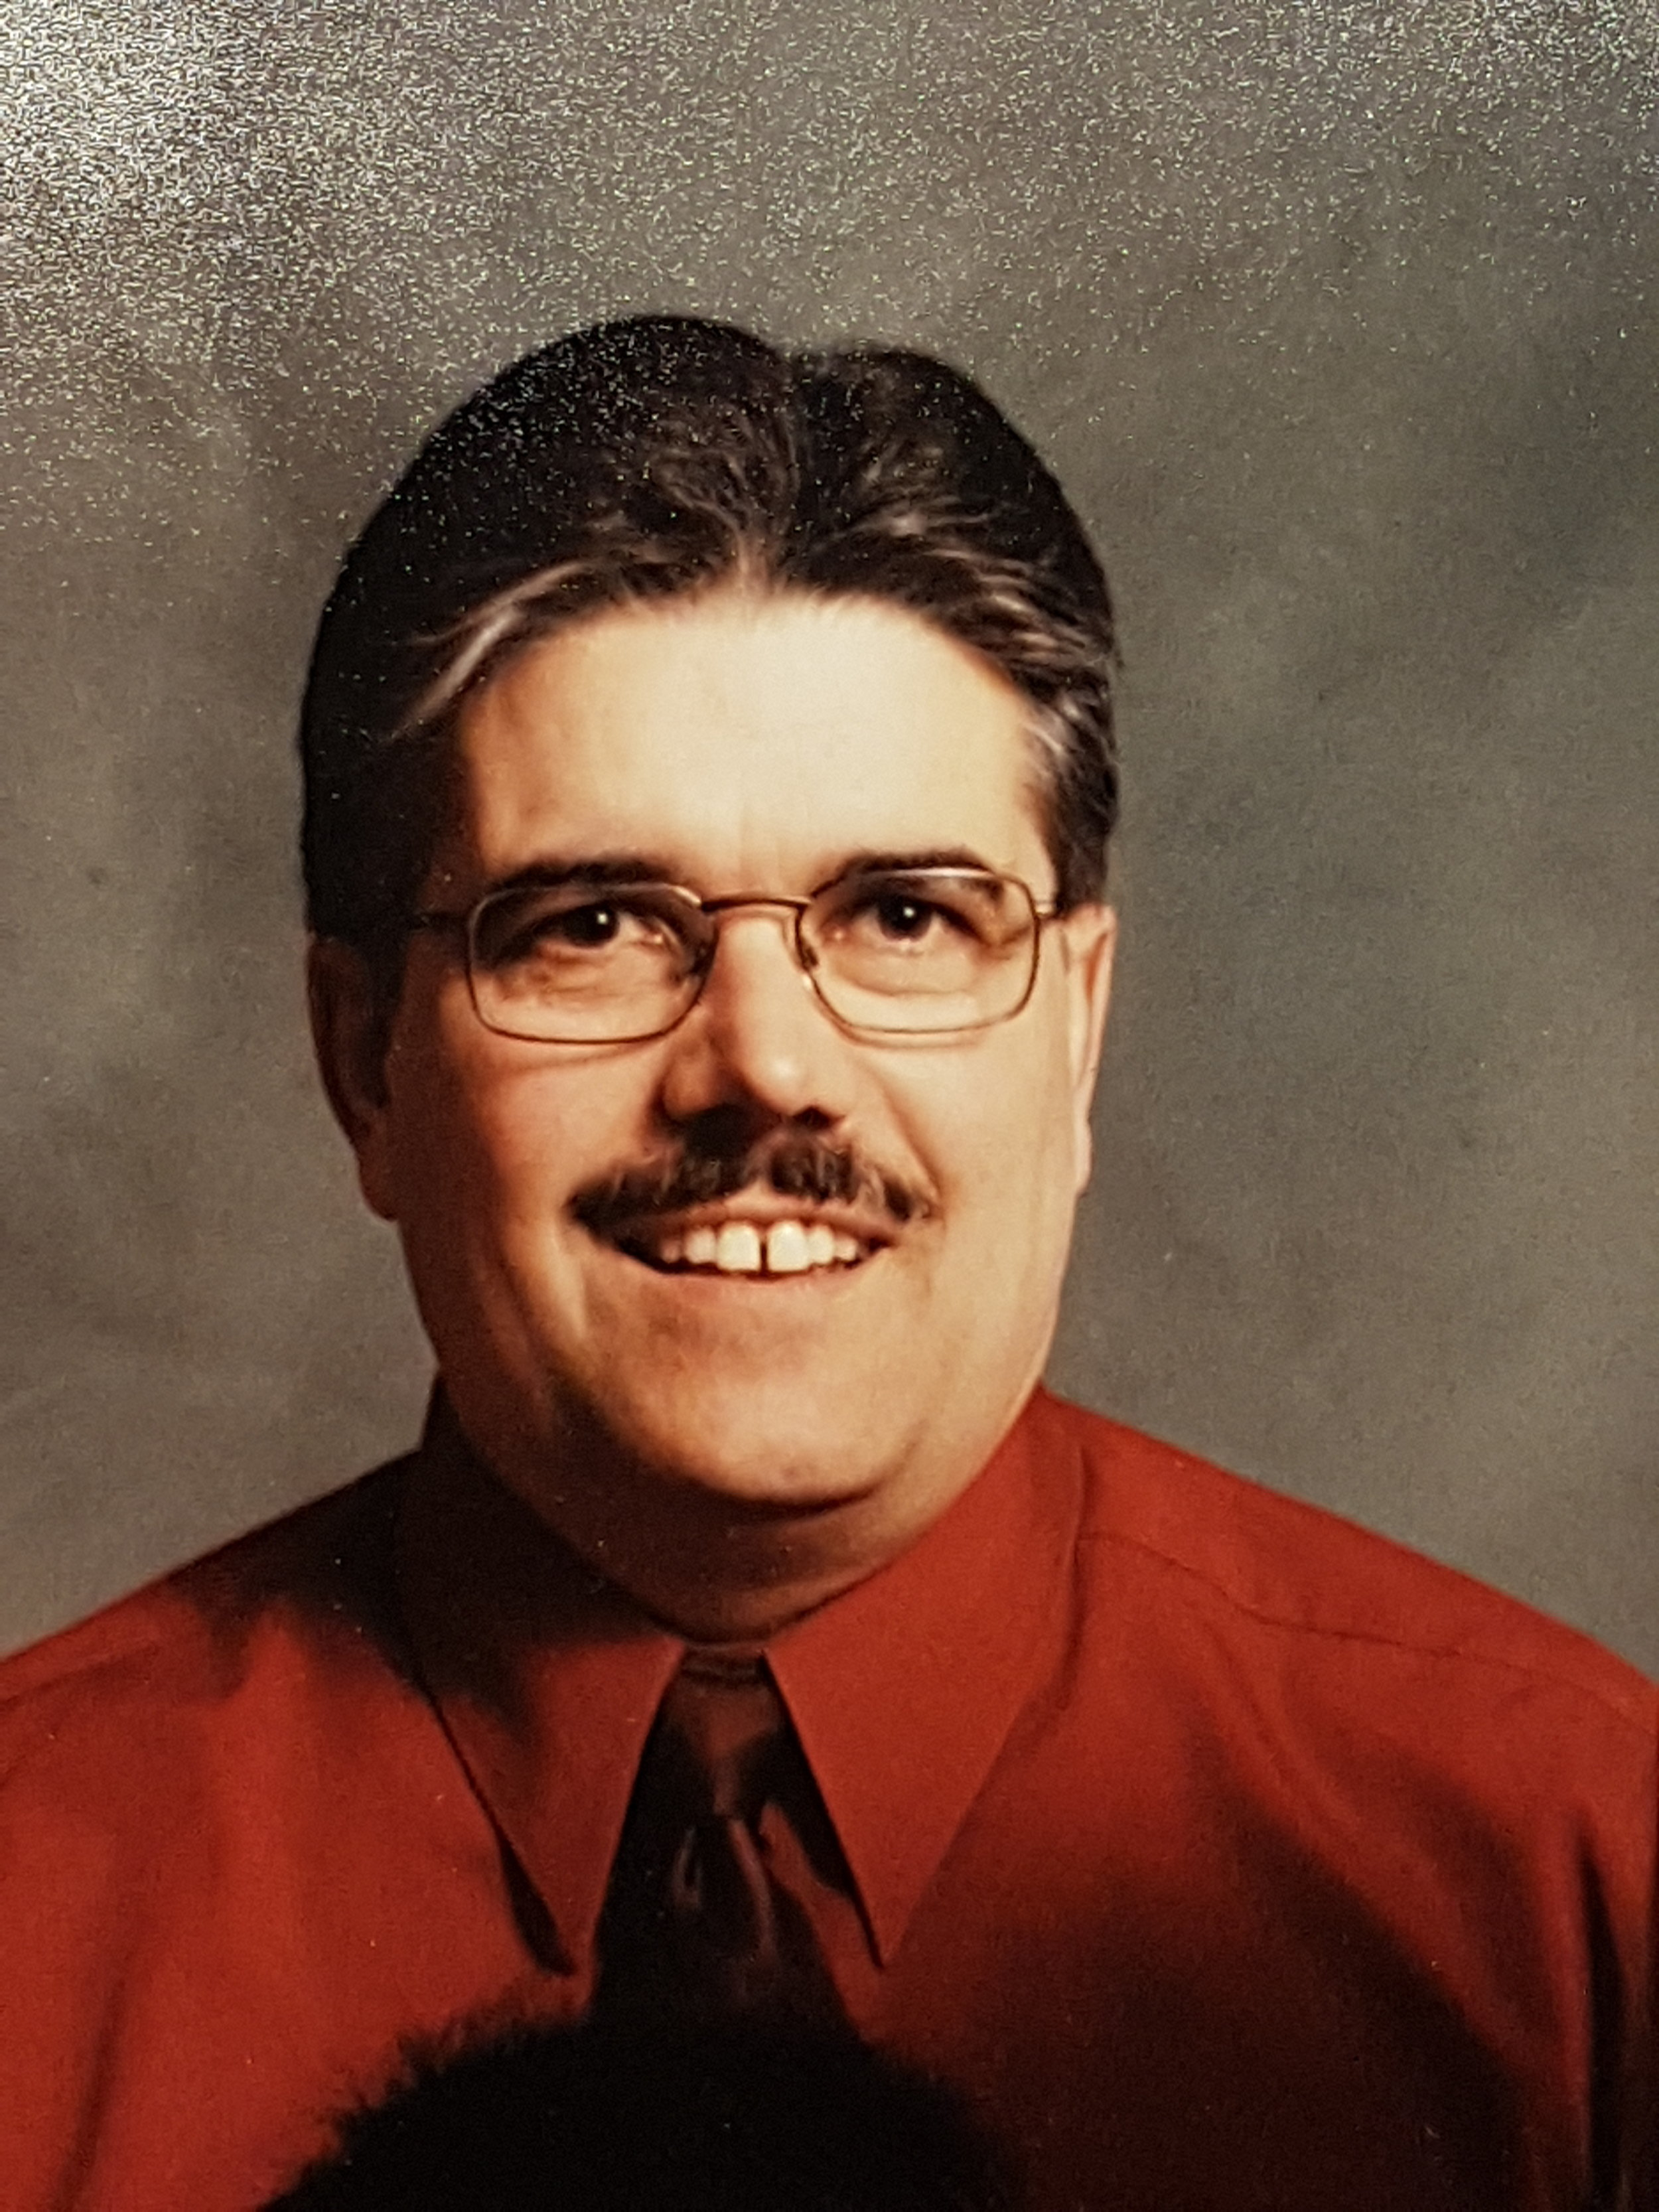 Warren Michelson in his radio and media days - supplied photo